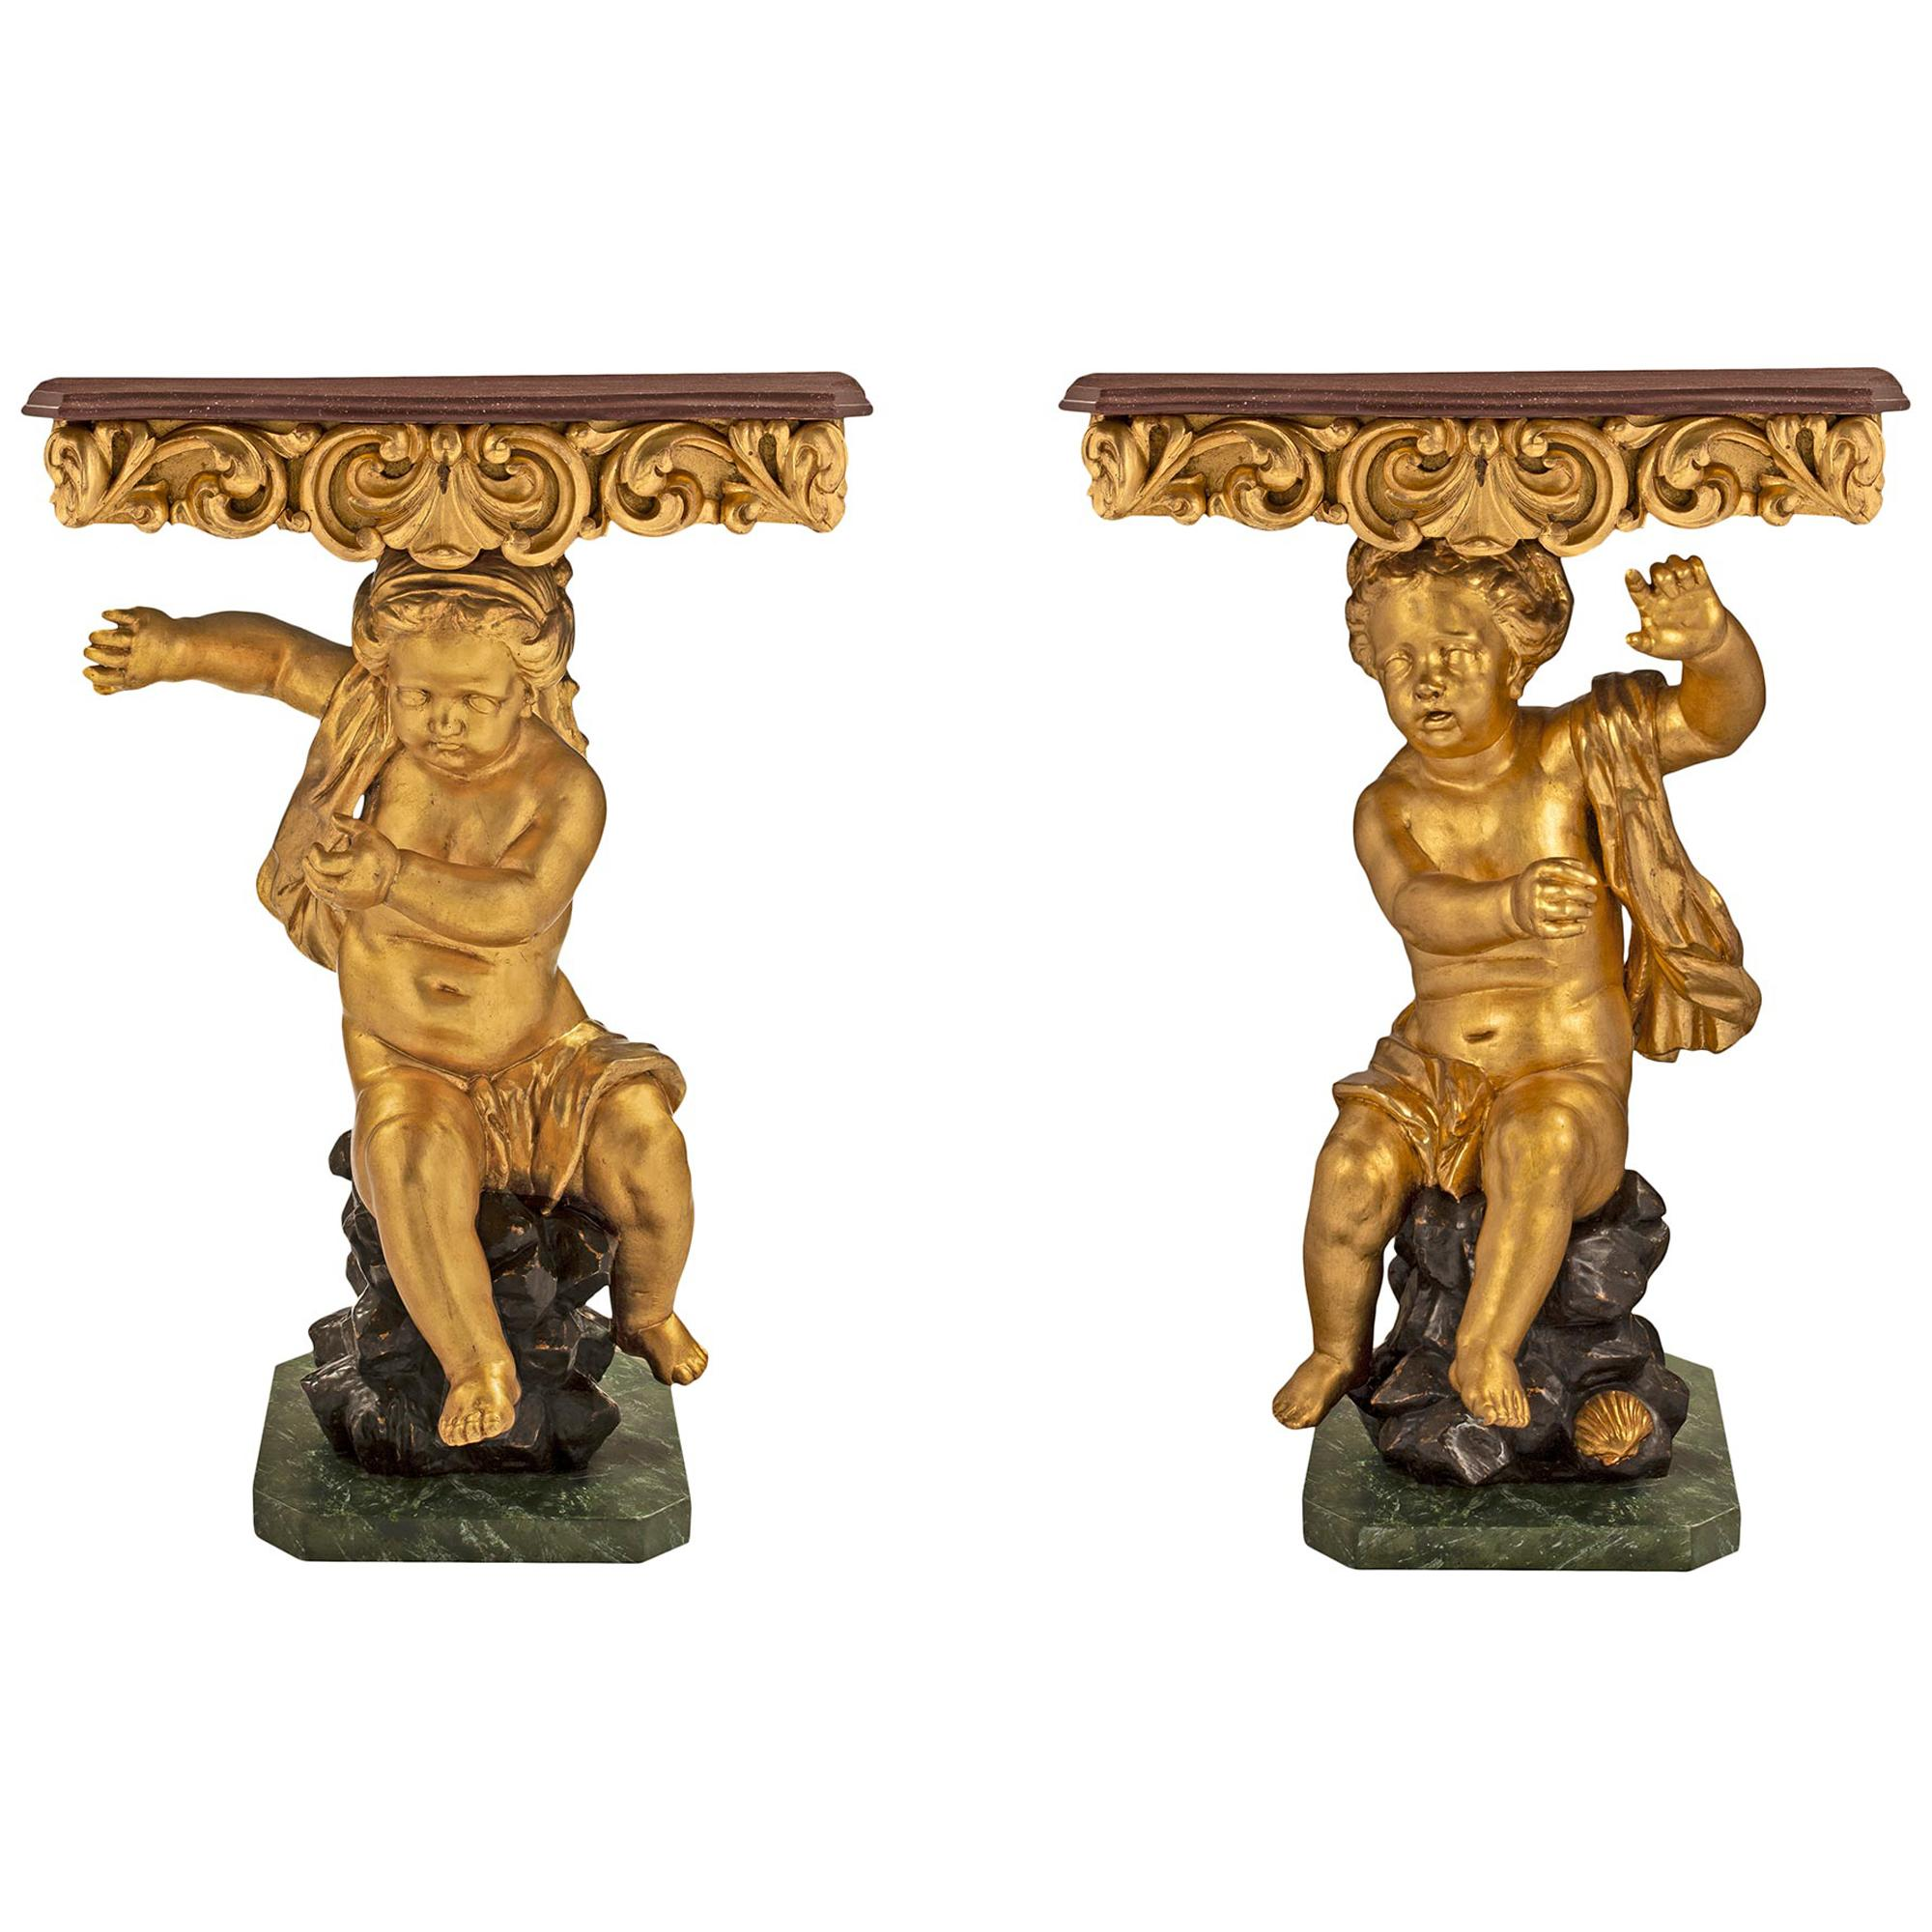 Pair of Italian 18th Century Baroque Giltwood and Faux Painted Consoles